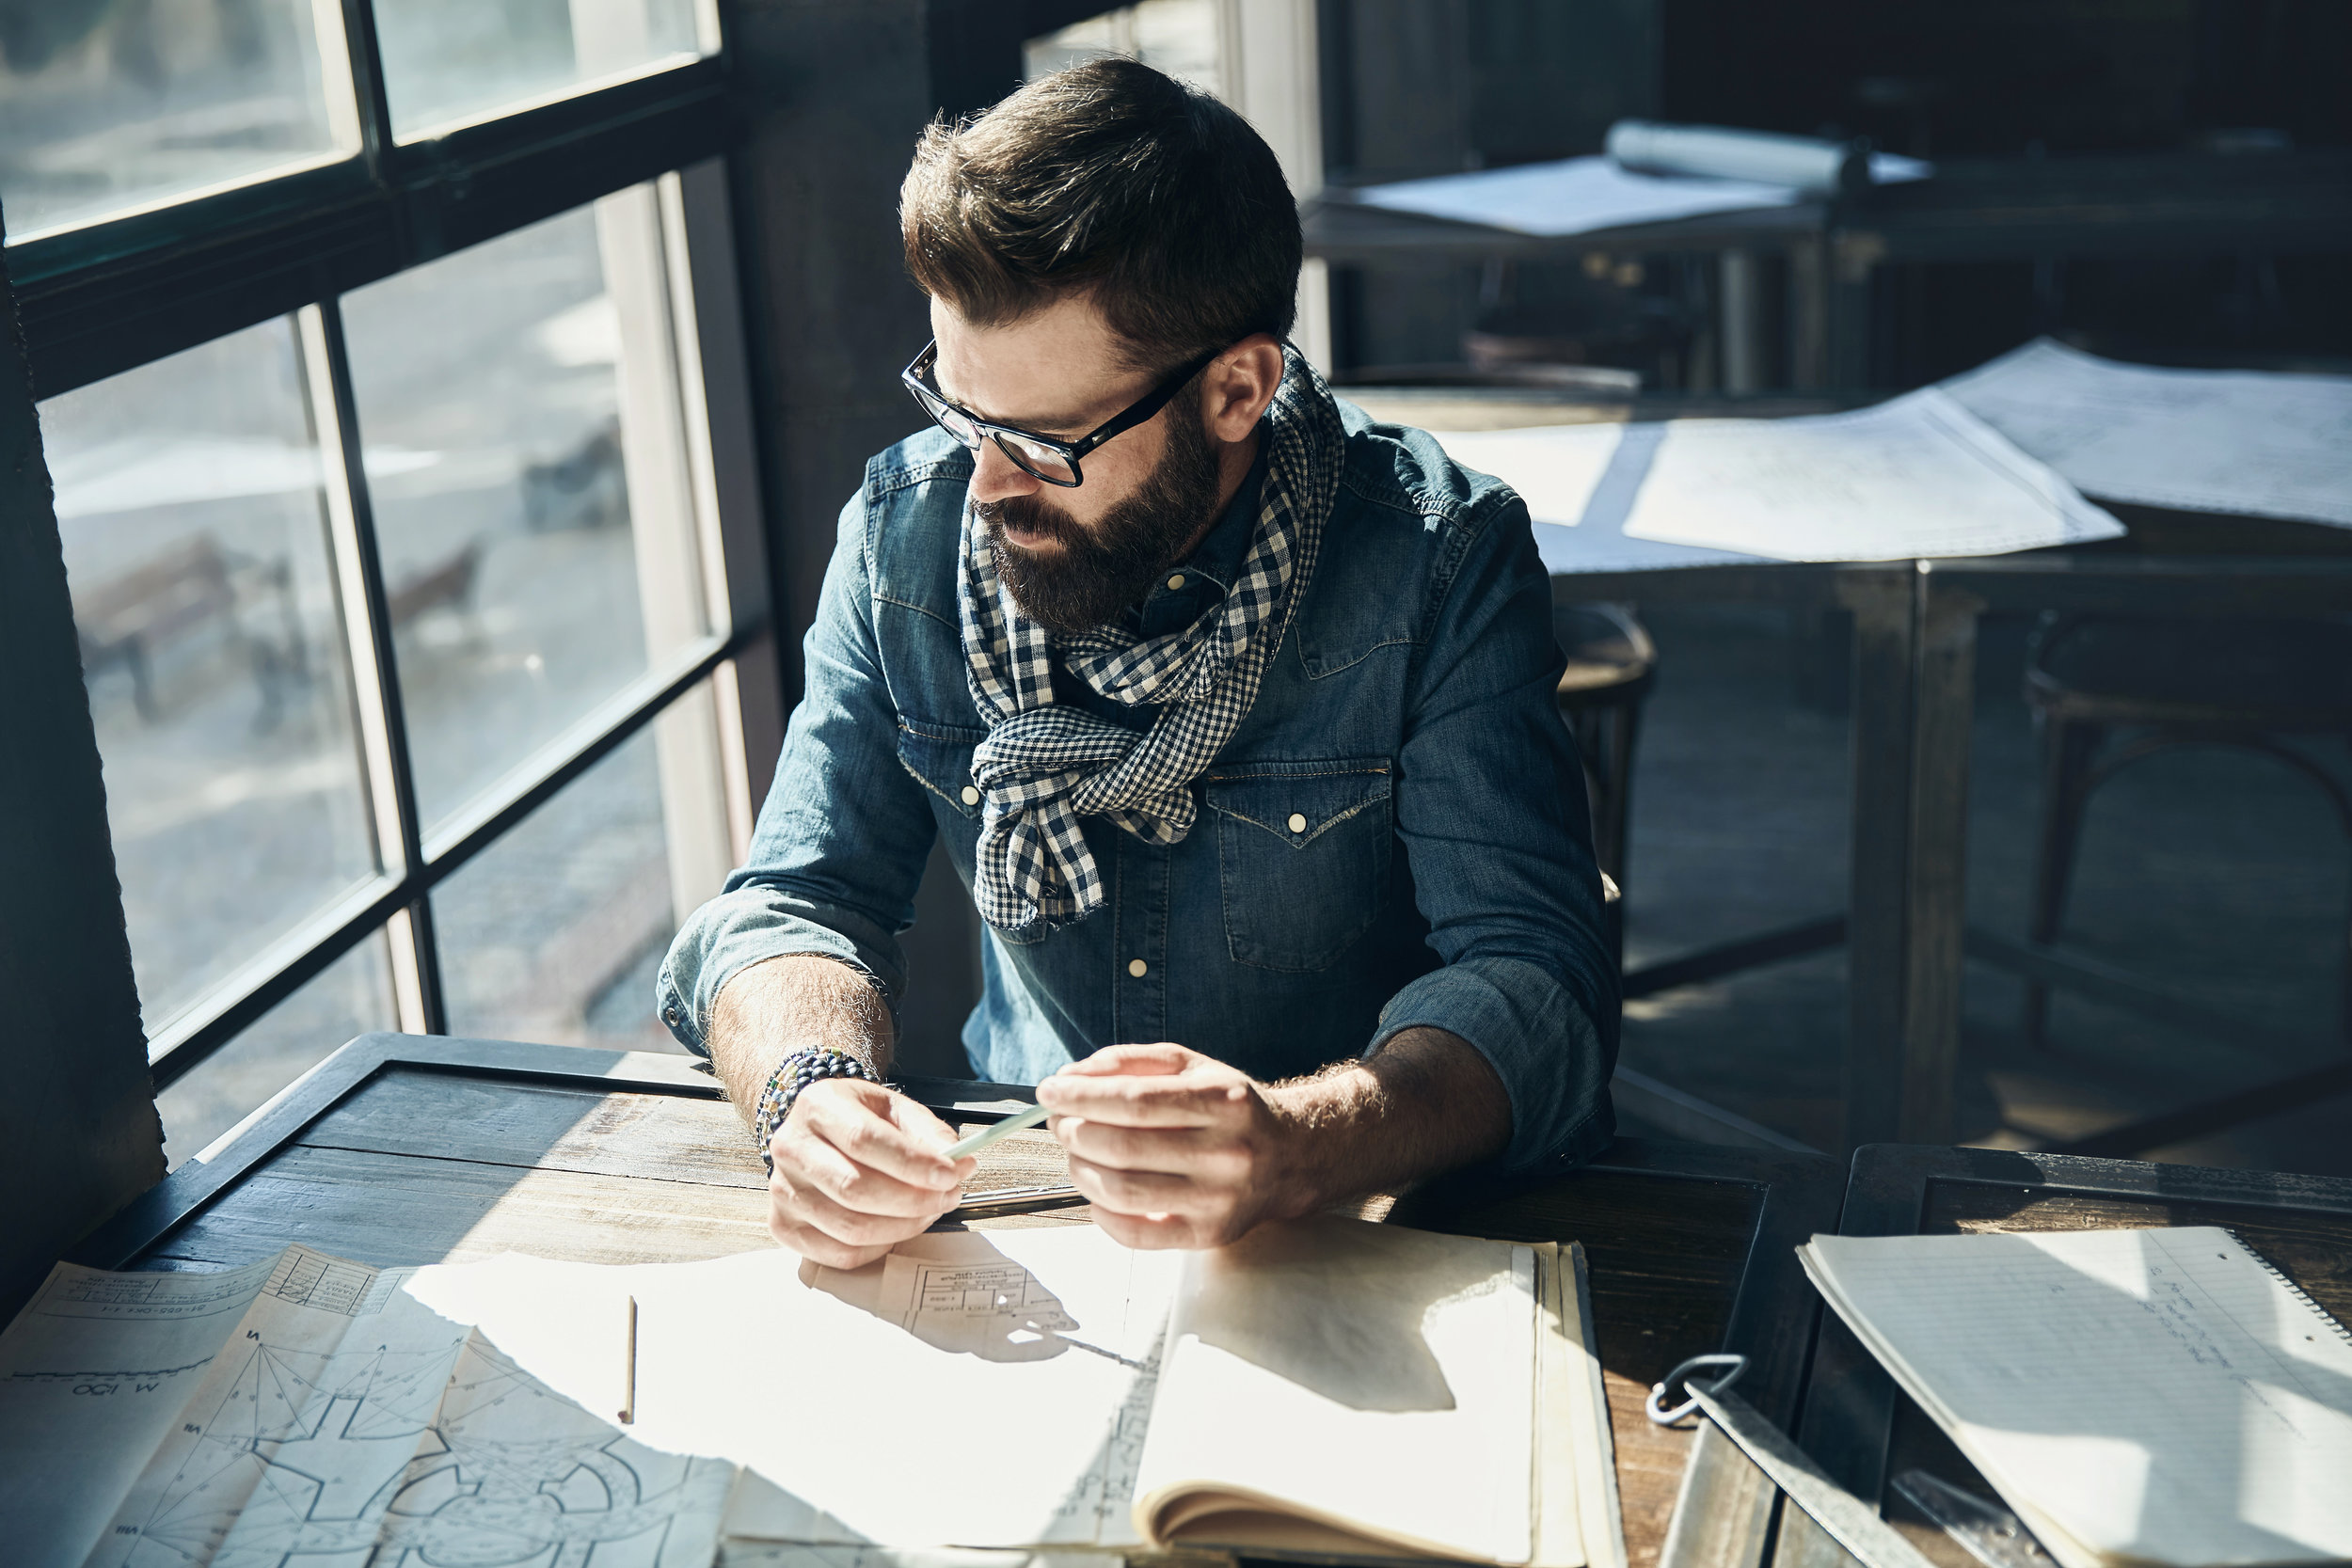 Man architect with dark hair and beard, weared in denim jacket, scarf and glasses is sitting in the modern office near the window with architectural plan on the table